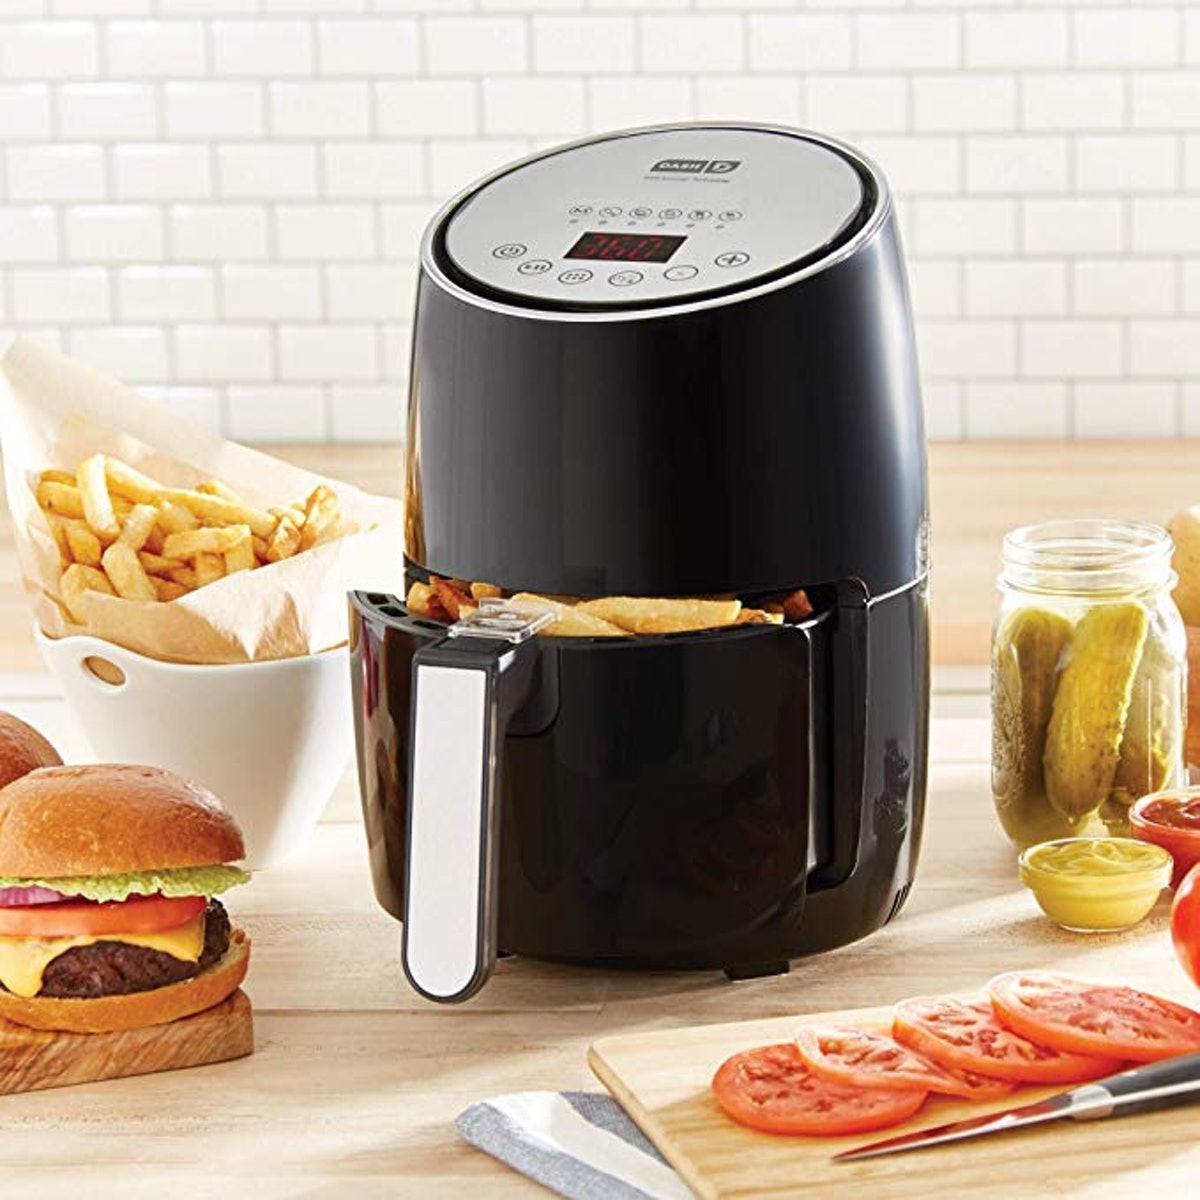 DASH Compact Electric Air Fryer And Oven Cooker